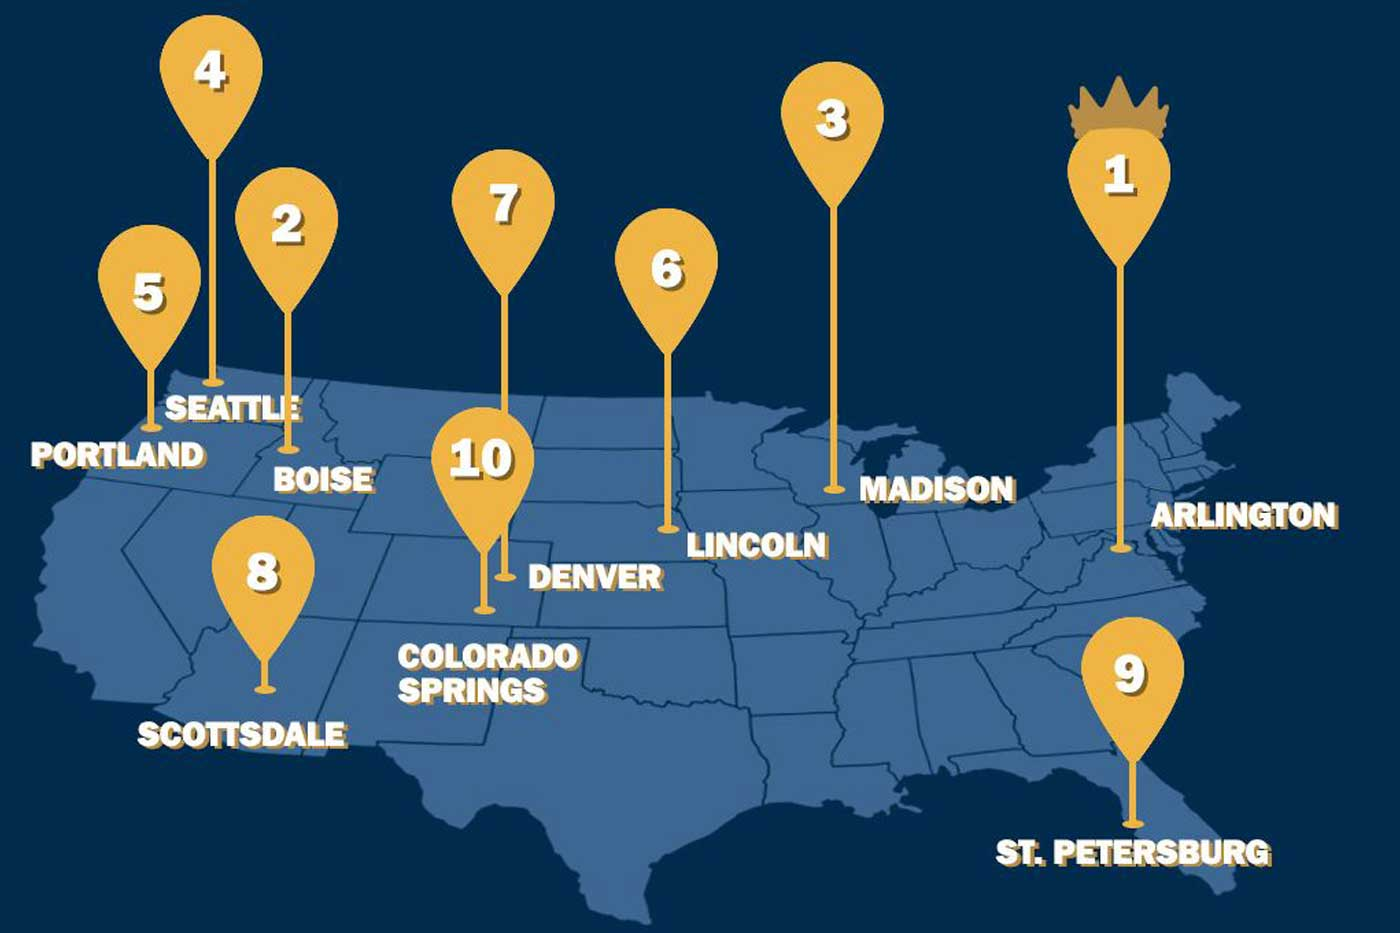 And America's Most-Handsome Cities Are...